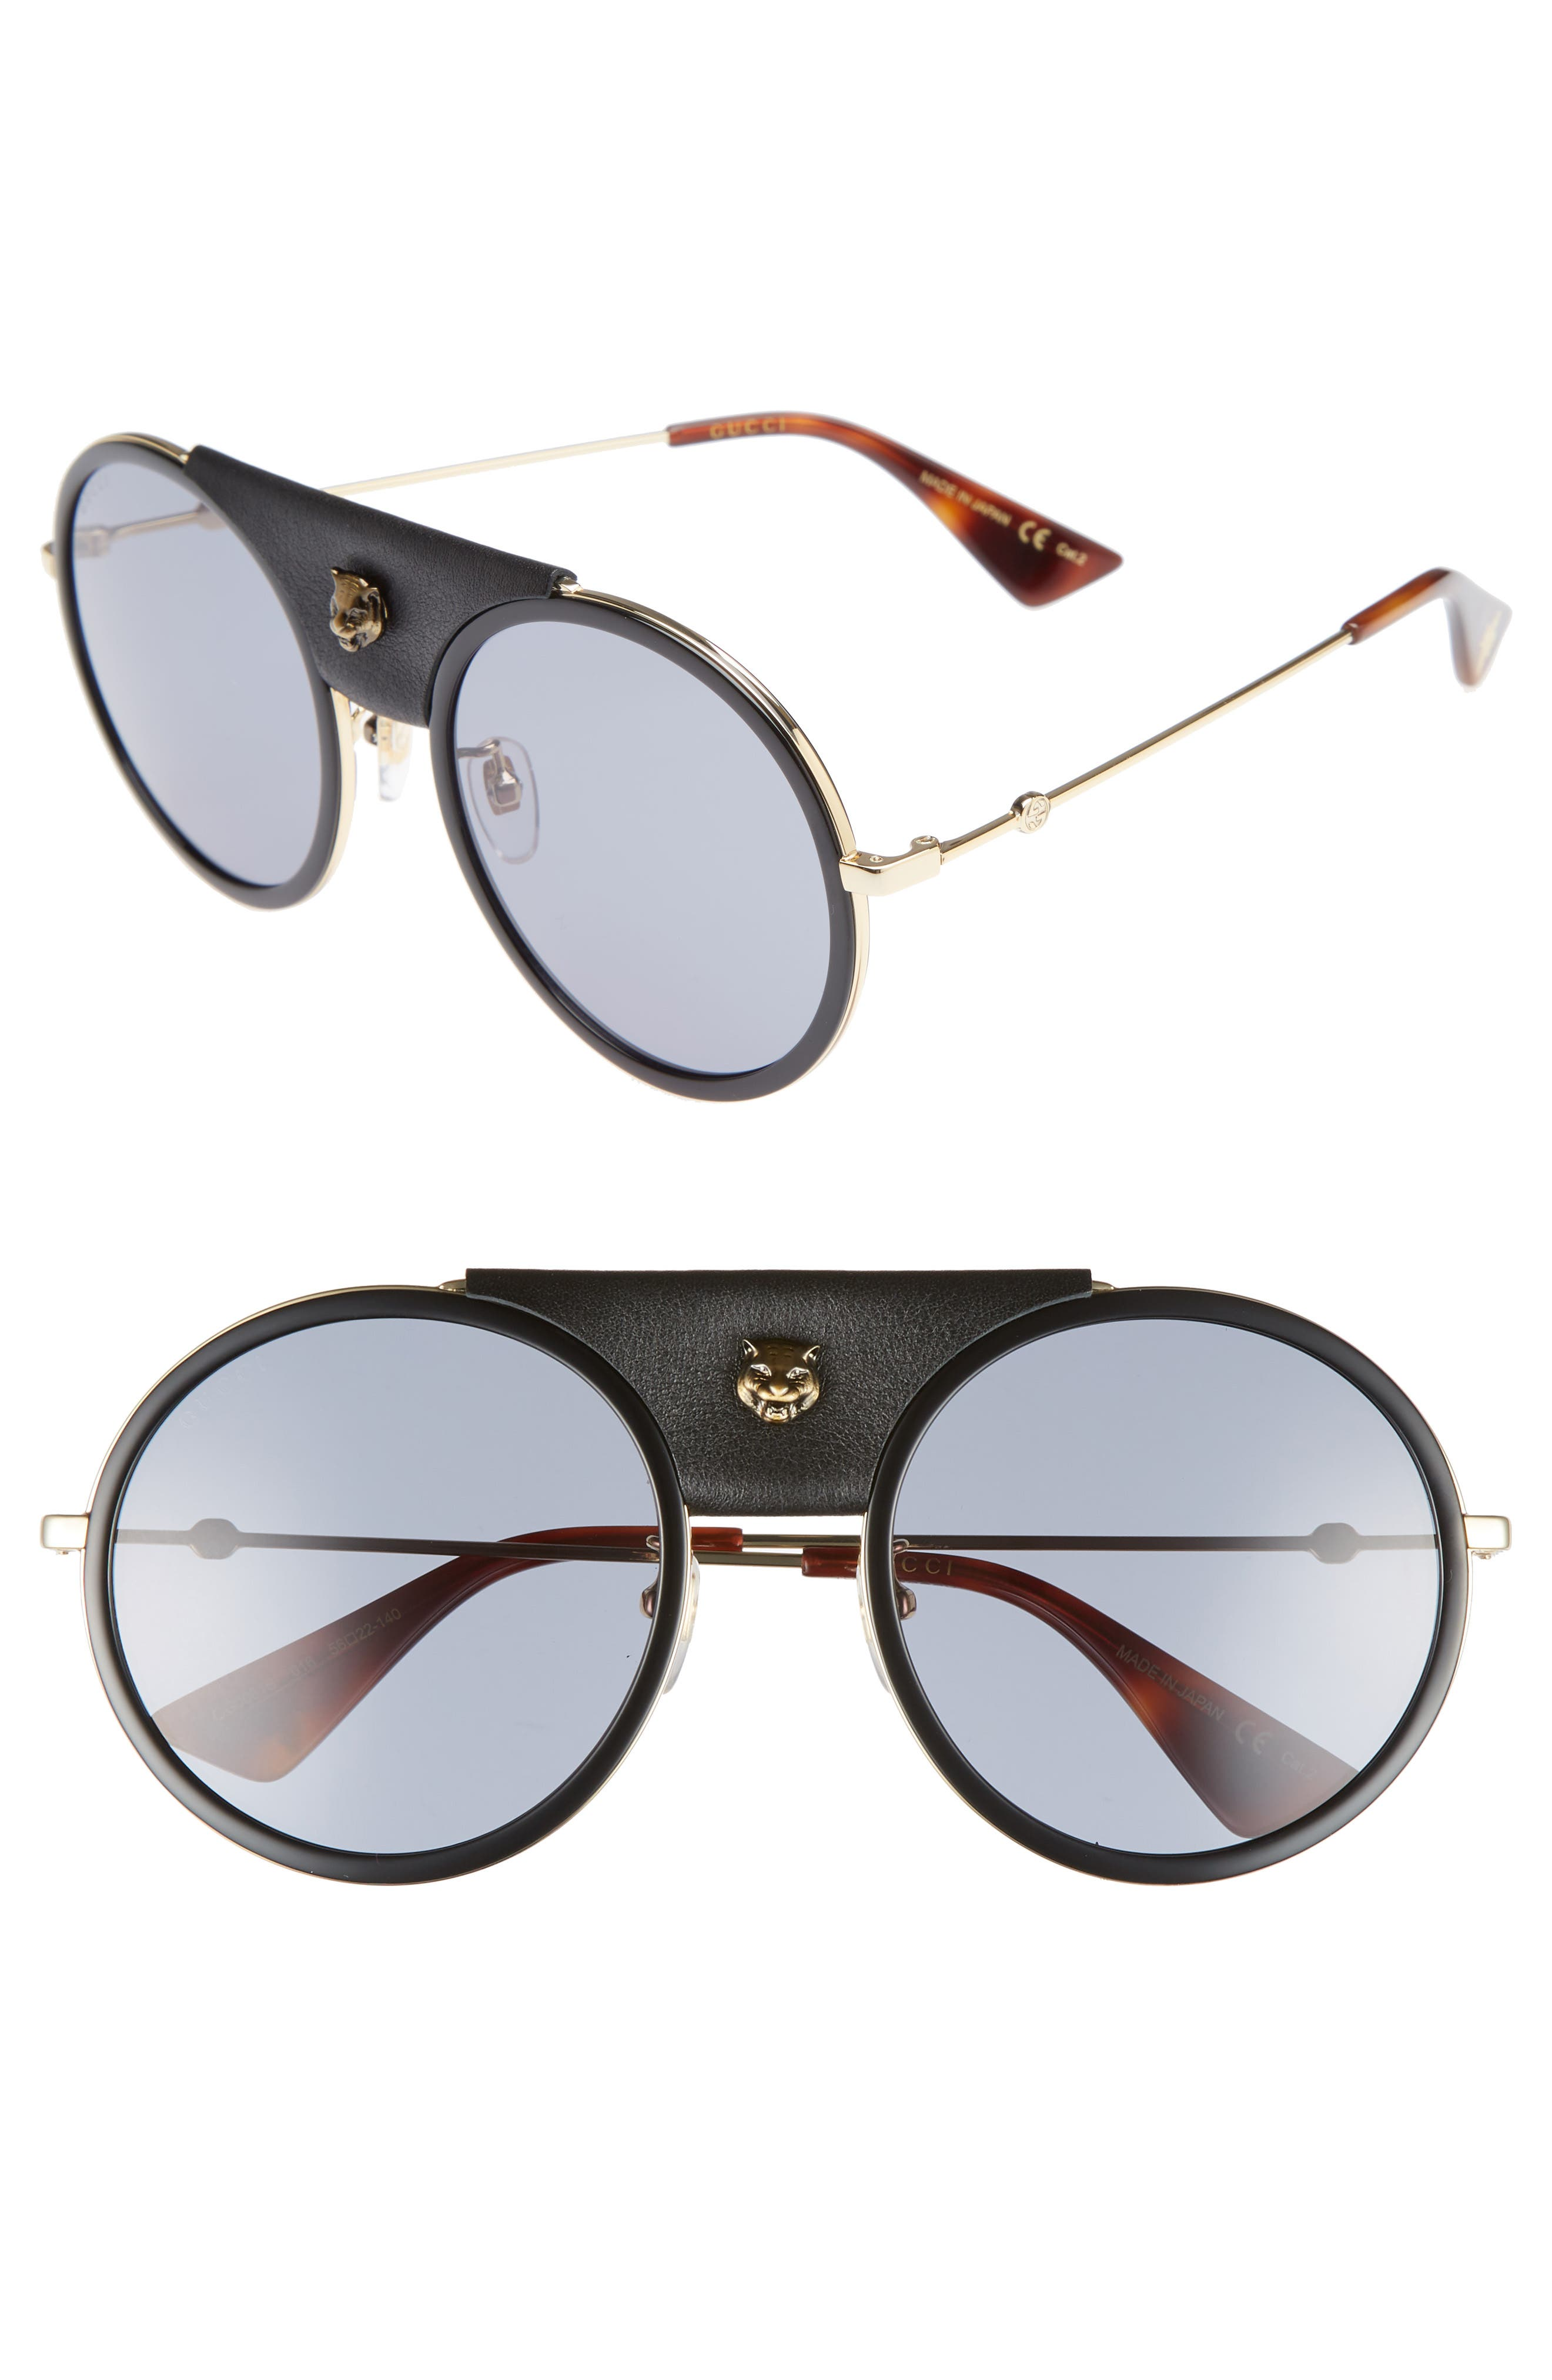 Main Image - Gucci 56mm Leather Bridge Aviator Sunglasses